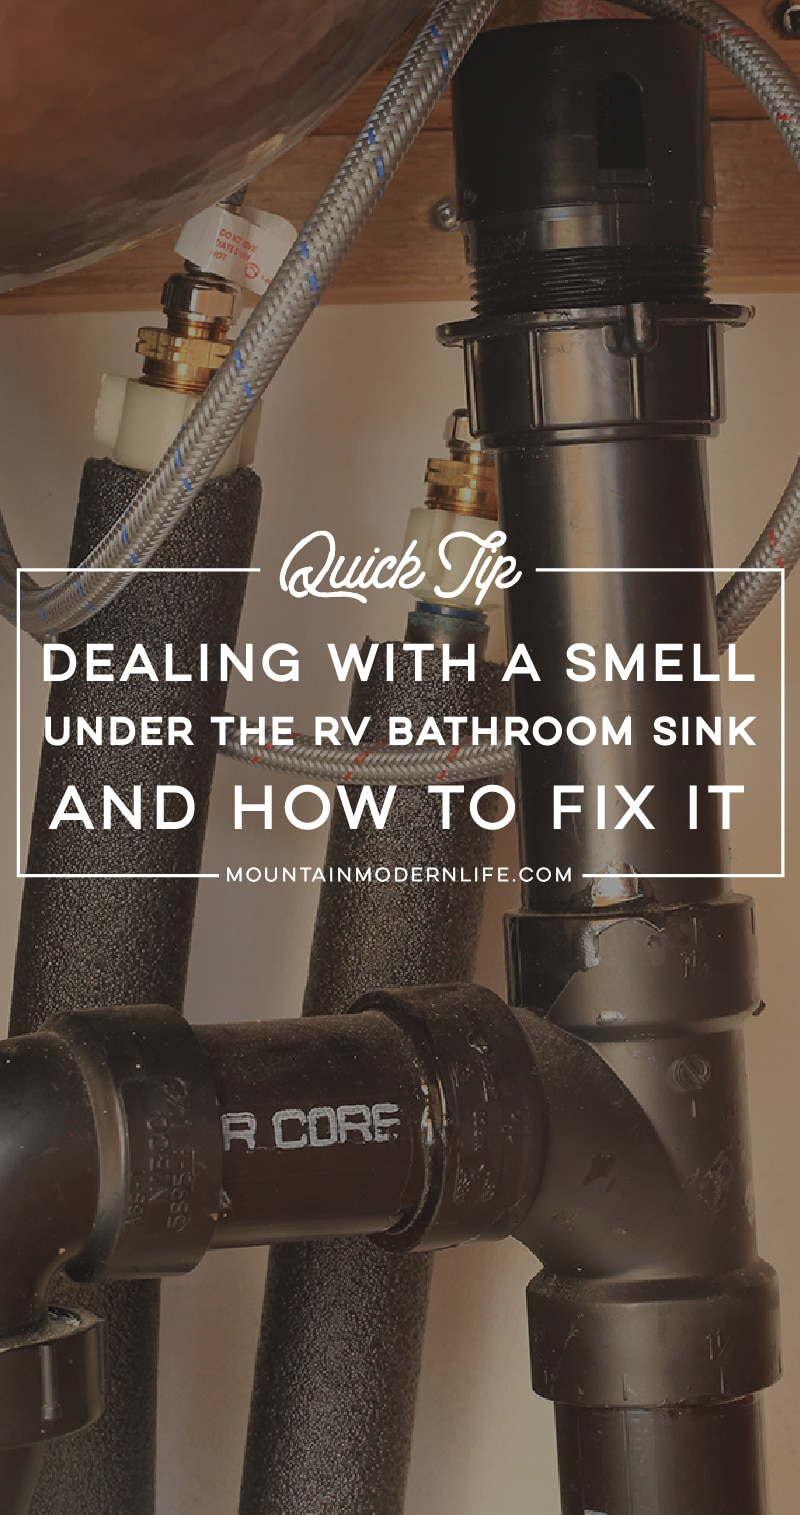 I hope you never have to deal with funky smells in your RV! But if you do, see how we got rid of the smell under RV bathroom sink. MountainModernLife.com